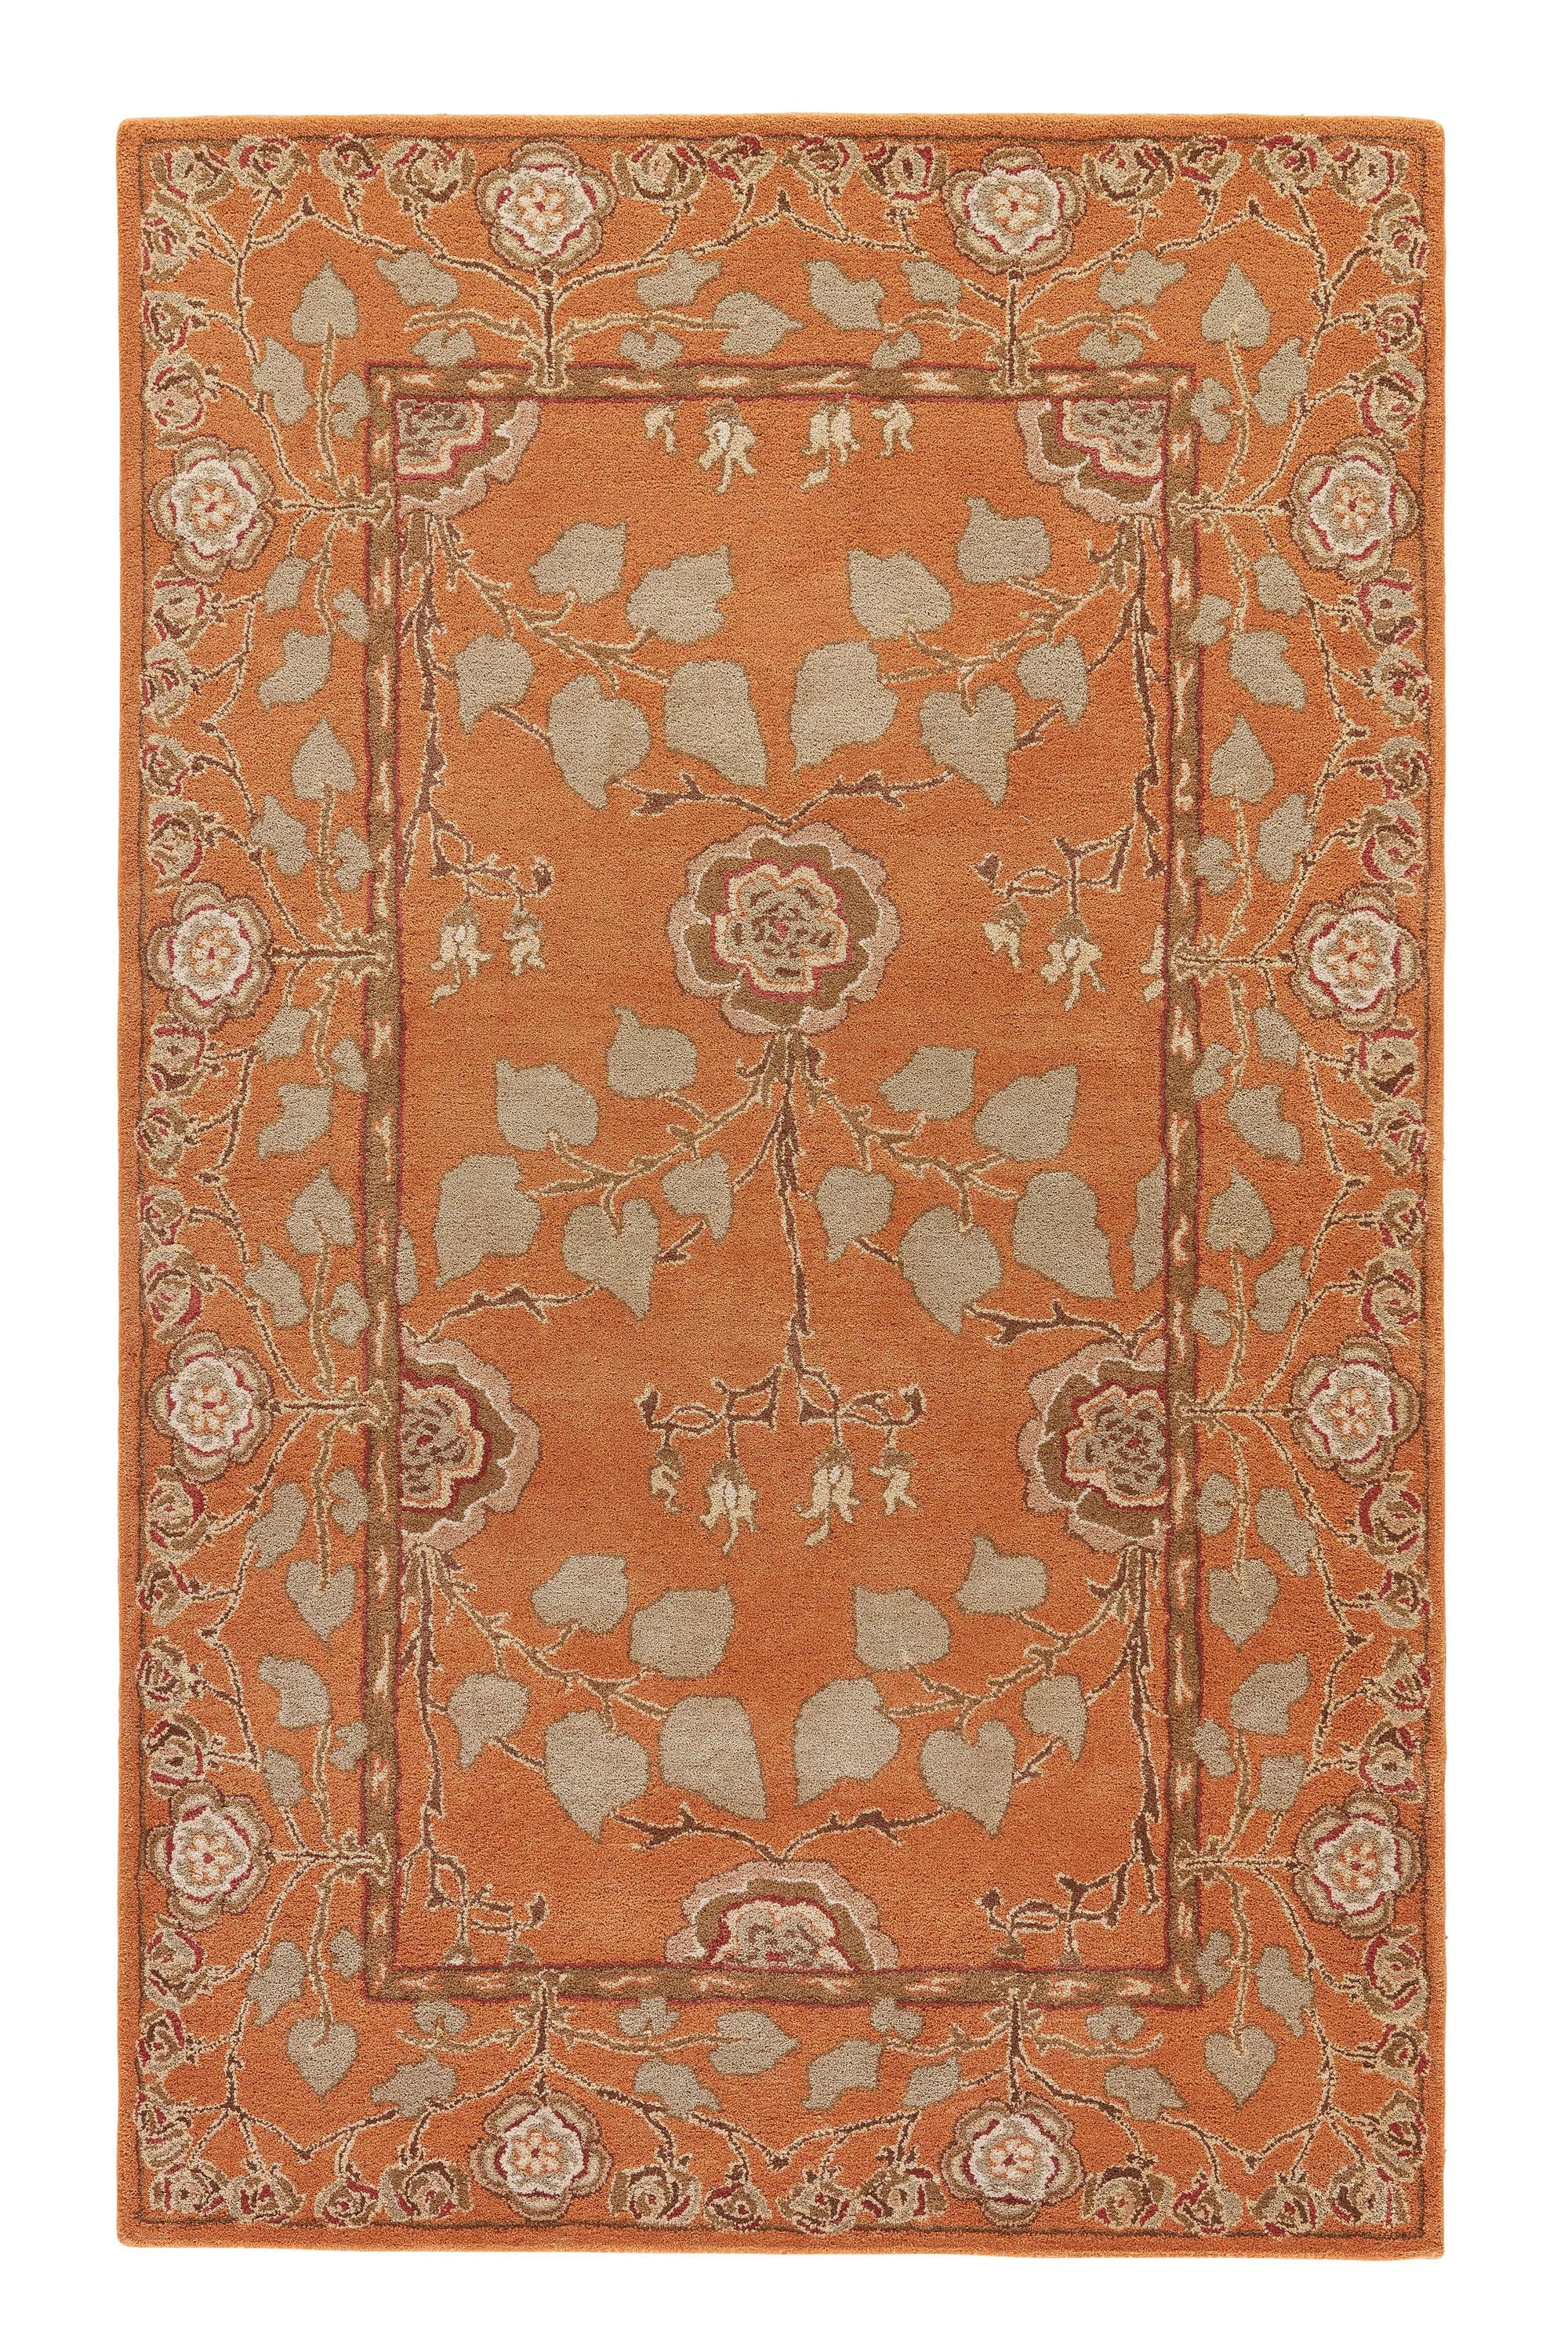 Rectangle 5x8 Orange Floral Hand Tufted Wool Traditional & Oriental recommended for Kitchen, Bedroom, Bathroom, Dining Room, Office, Hallway, Living Room